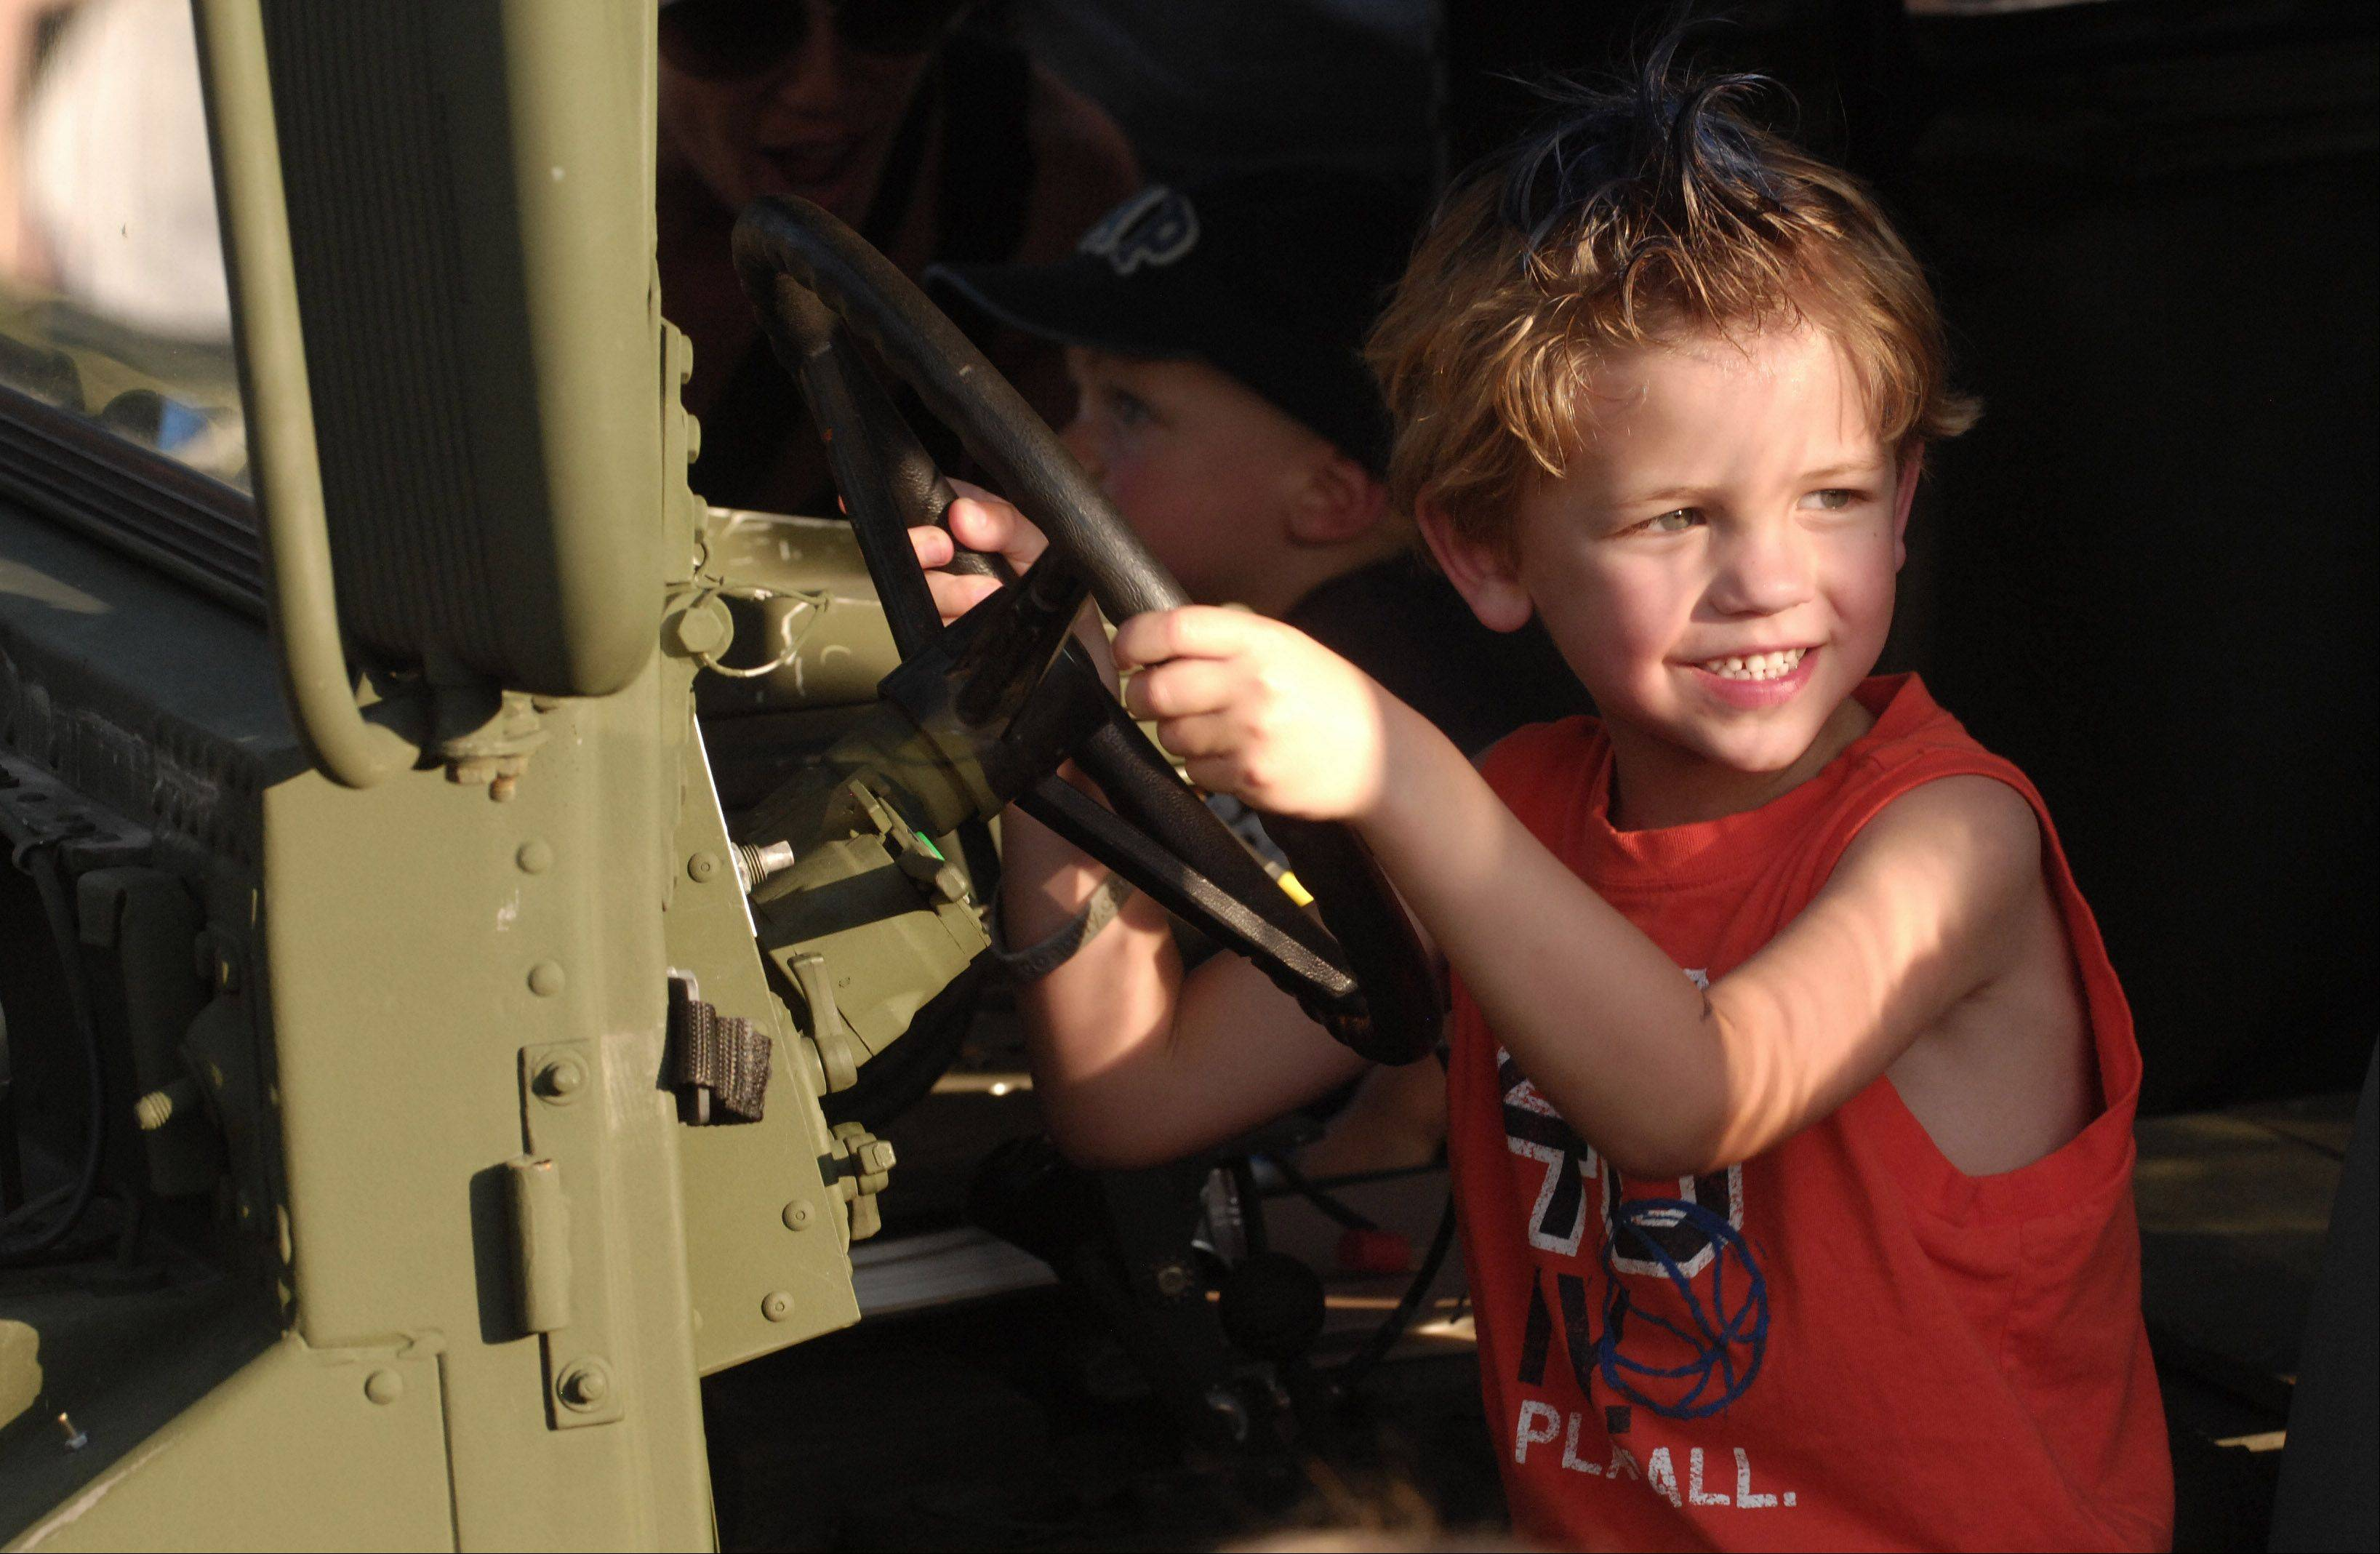 Jack Reed, 5, of Arlington Heights sits in the driver's seat of a military vehicle during Tuesday's National Night Out at North School Park in Arlington Heights.